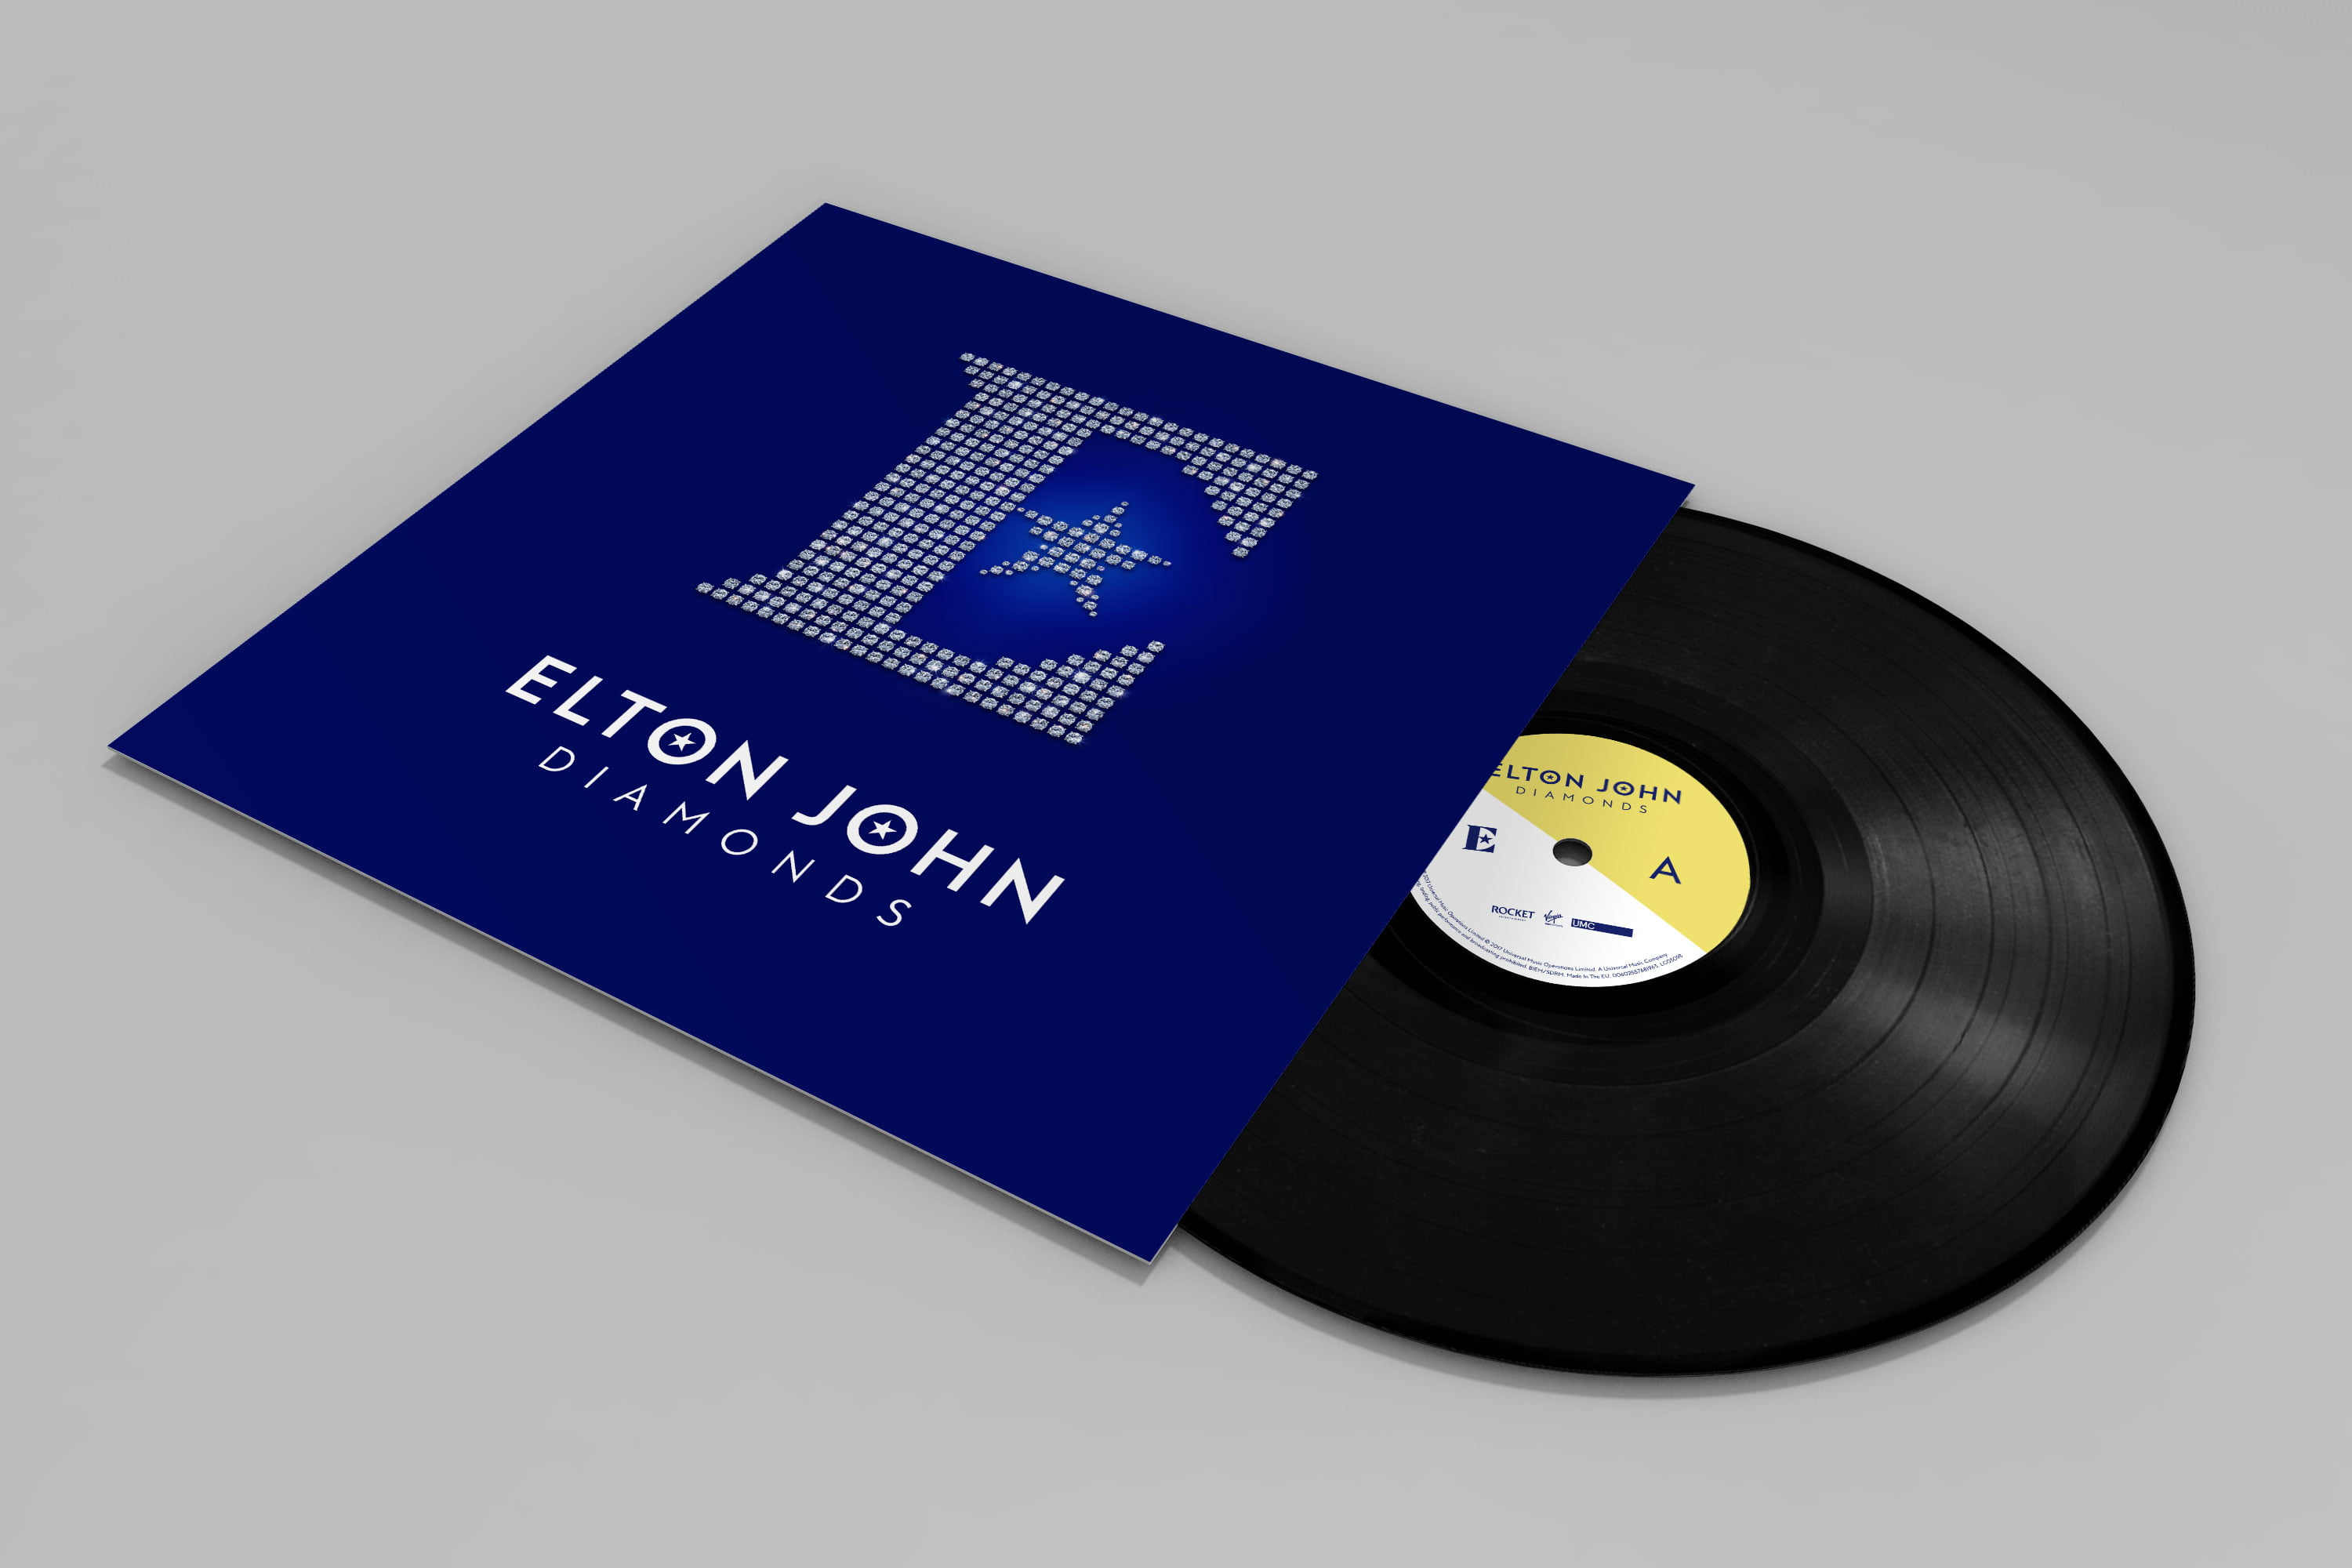 Elton John - Diamonds (2 LP) (Vinyl)